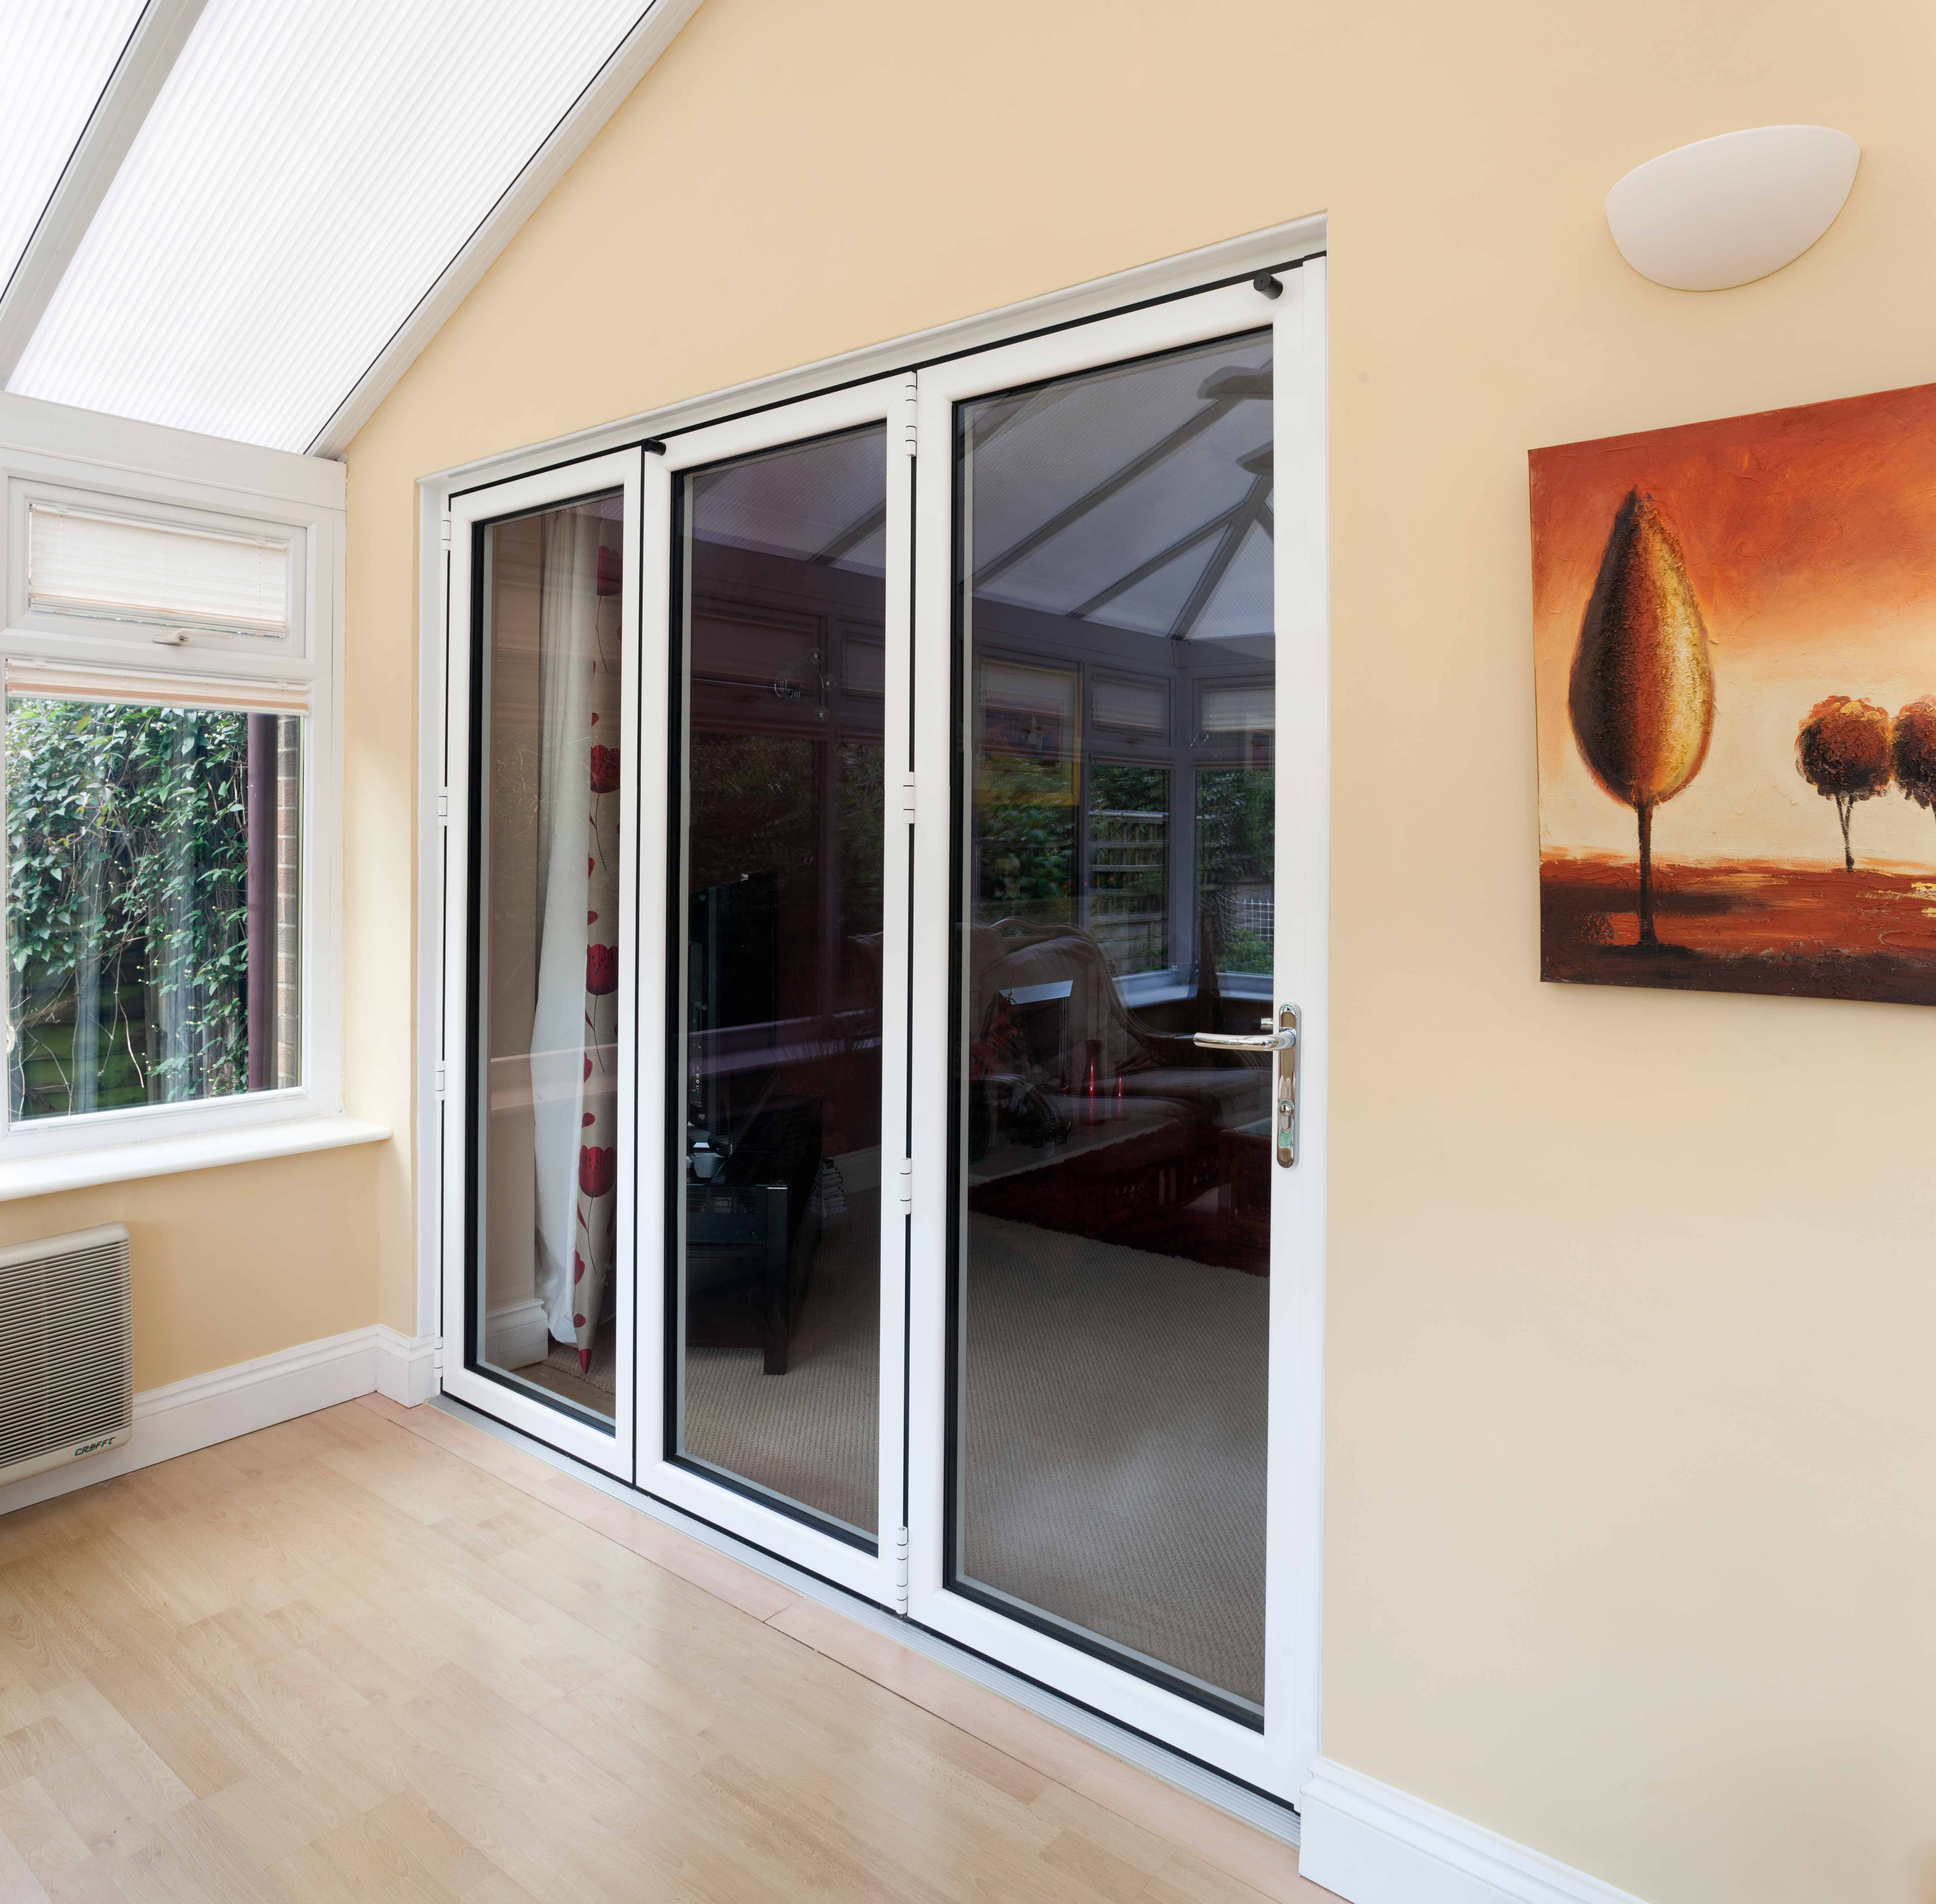 Bi-Fold Doors and UPVC Windows in White